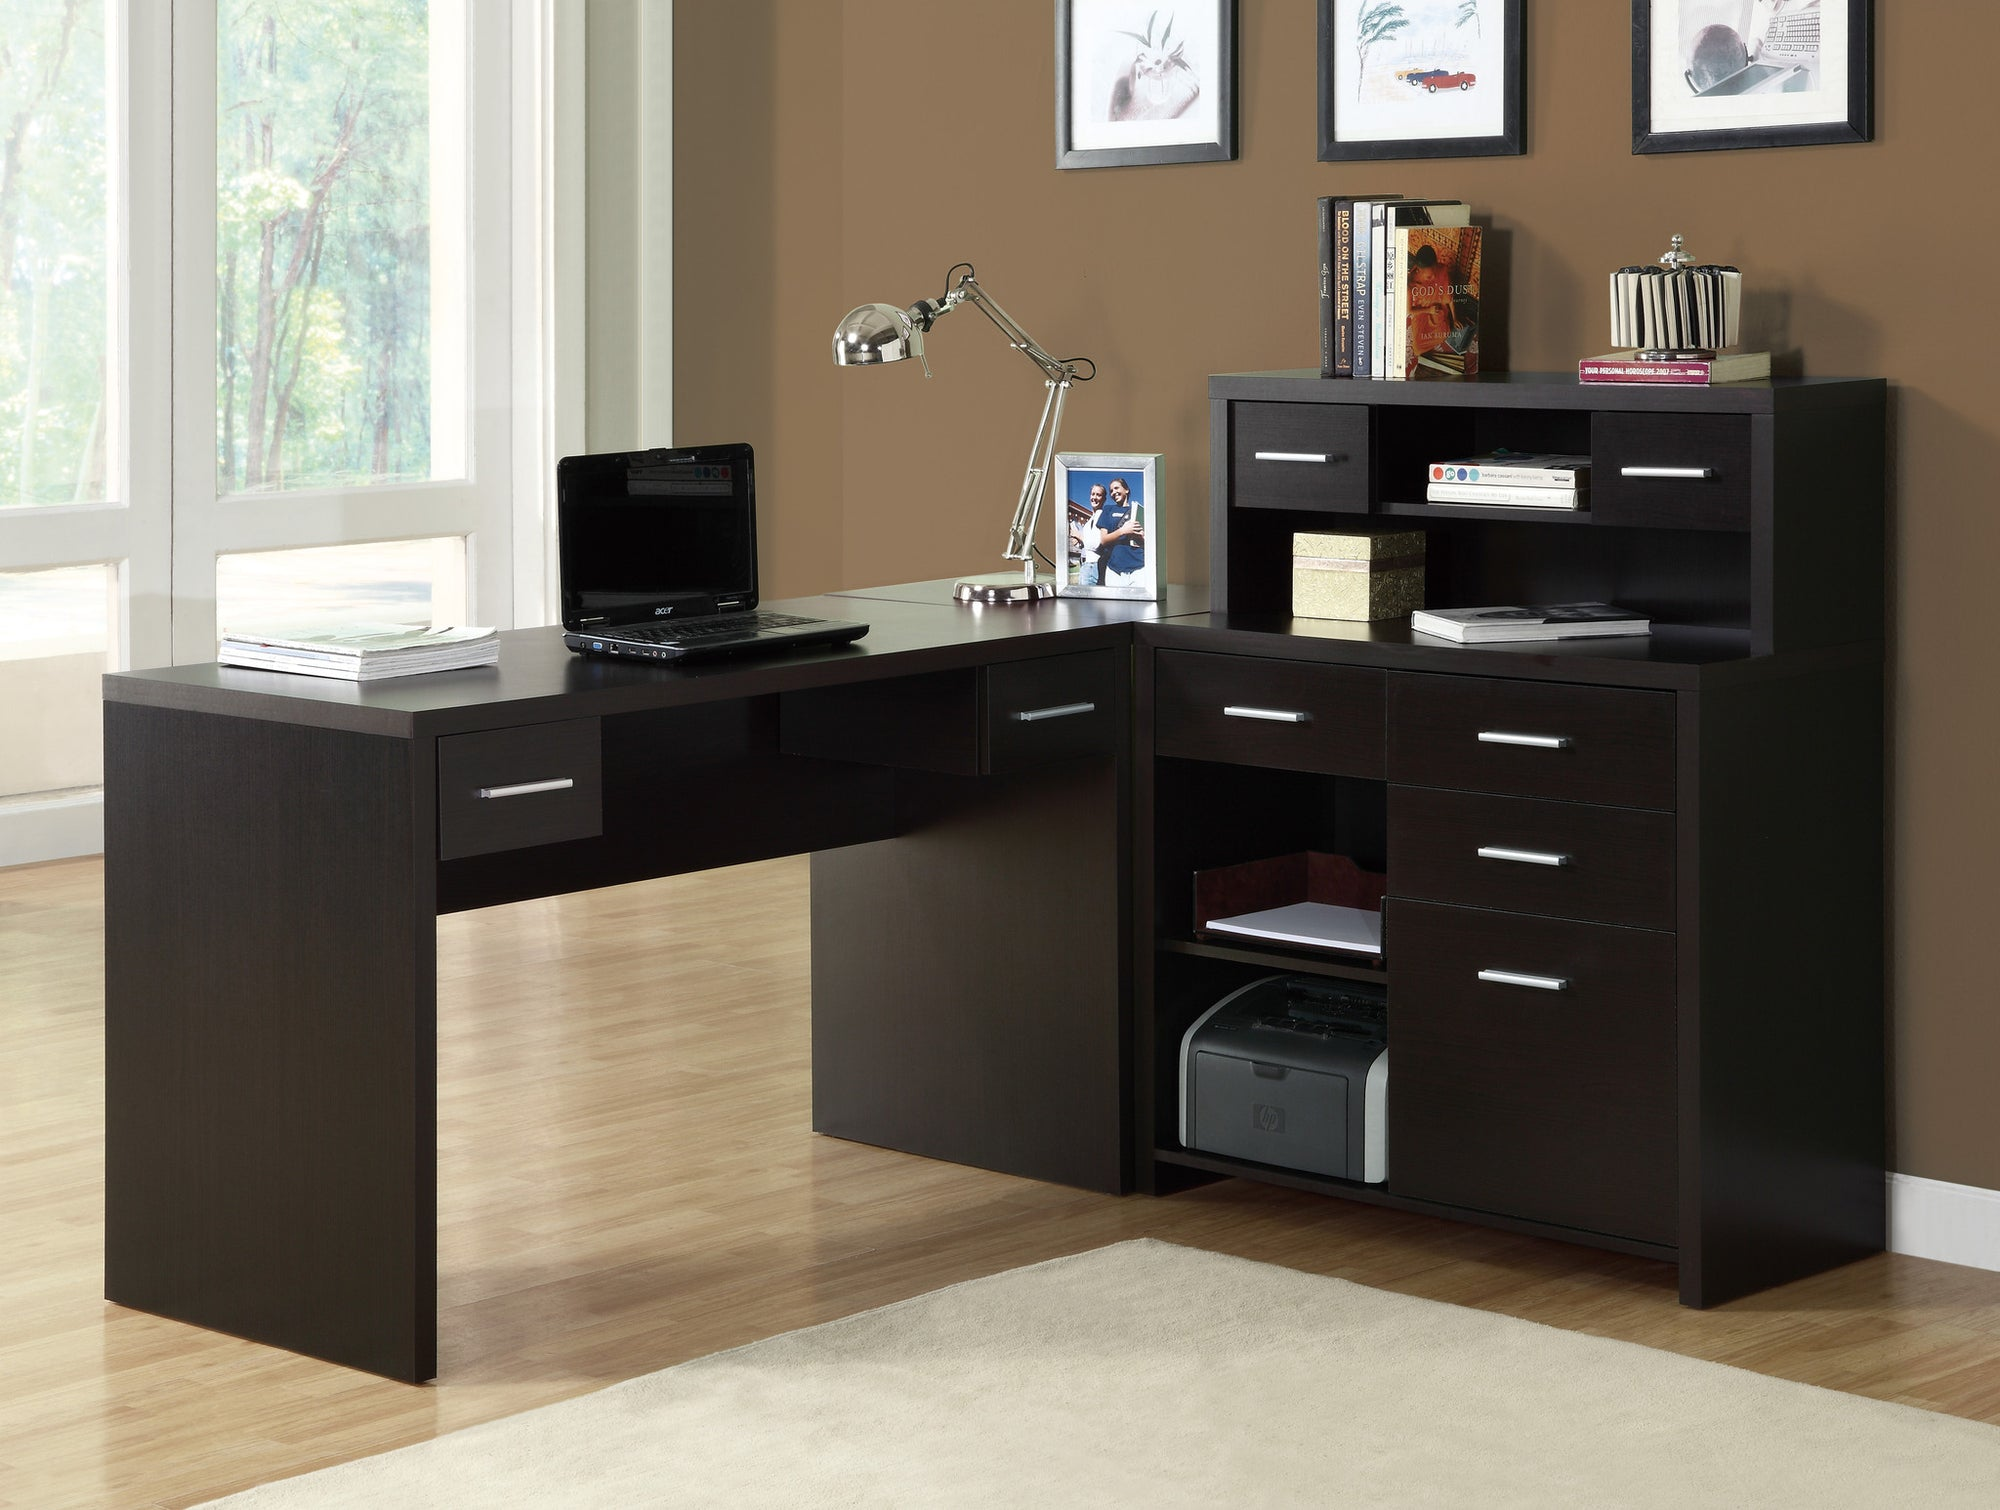 Sleek Cappuccino Finished L Shaped Corner Office Desk With Storage